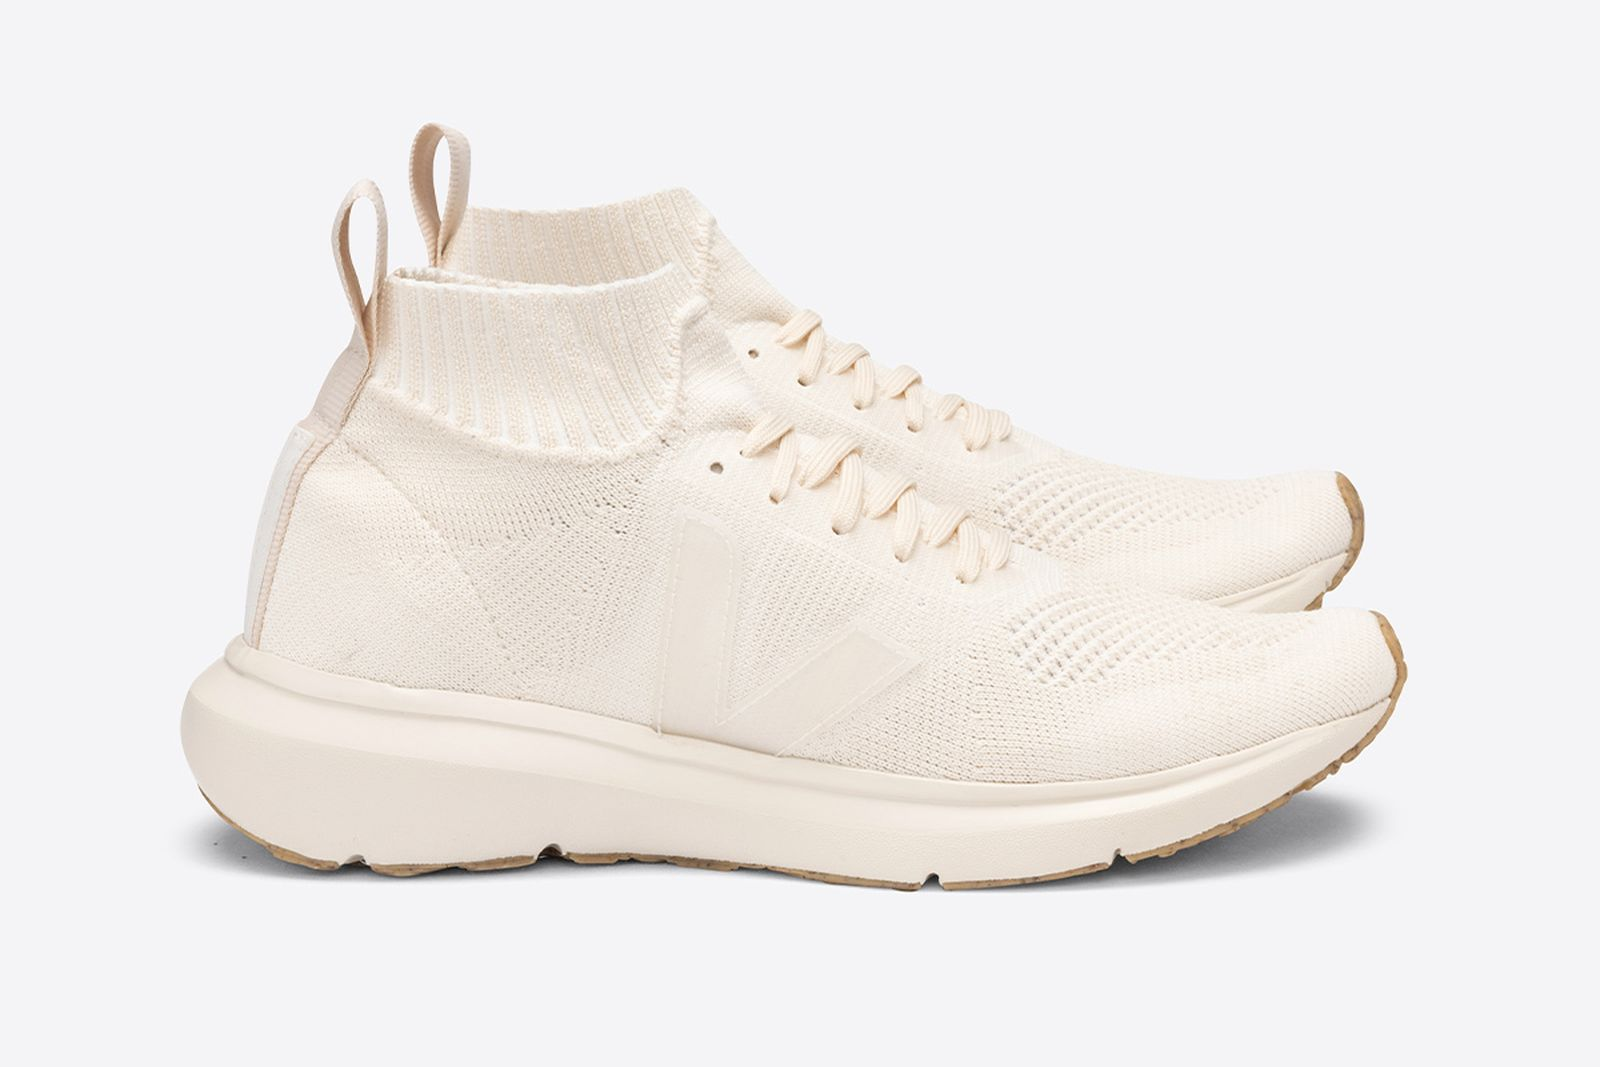 rick-owens-veja-fall-2020-release-date-price-04